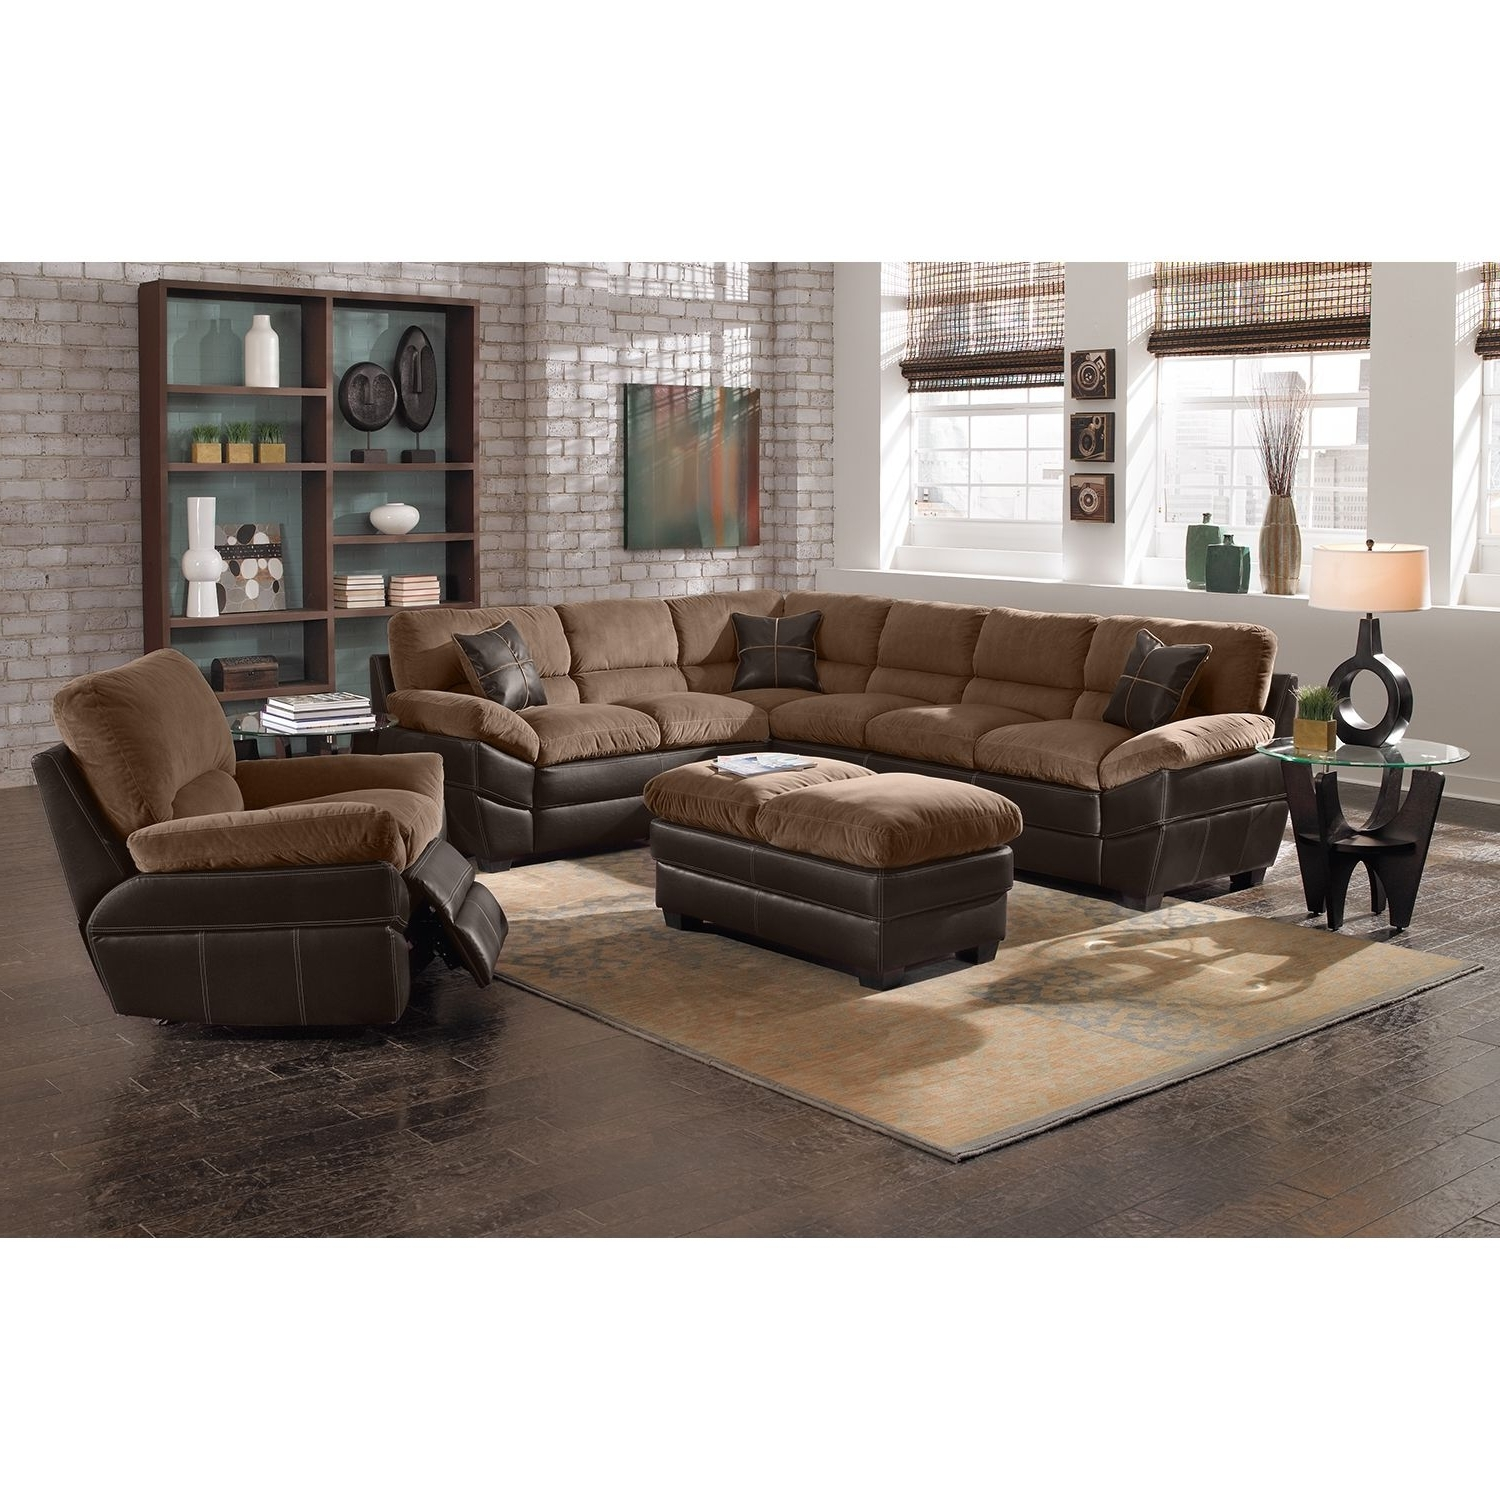 Most Recent Value City Sectional Sofas In Chandler Upholstery 2 Pc (View 6 of 15)